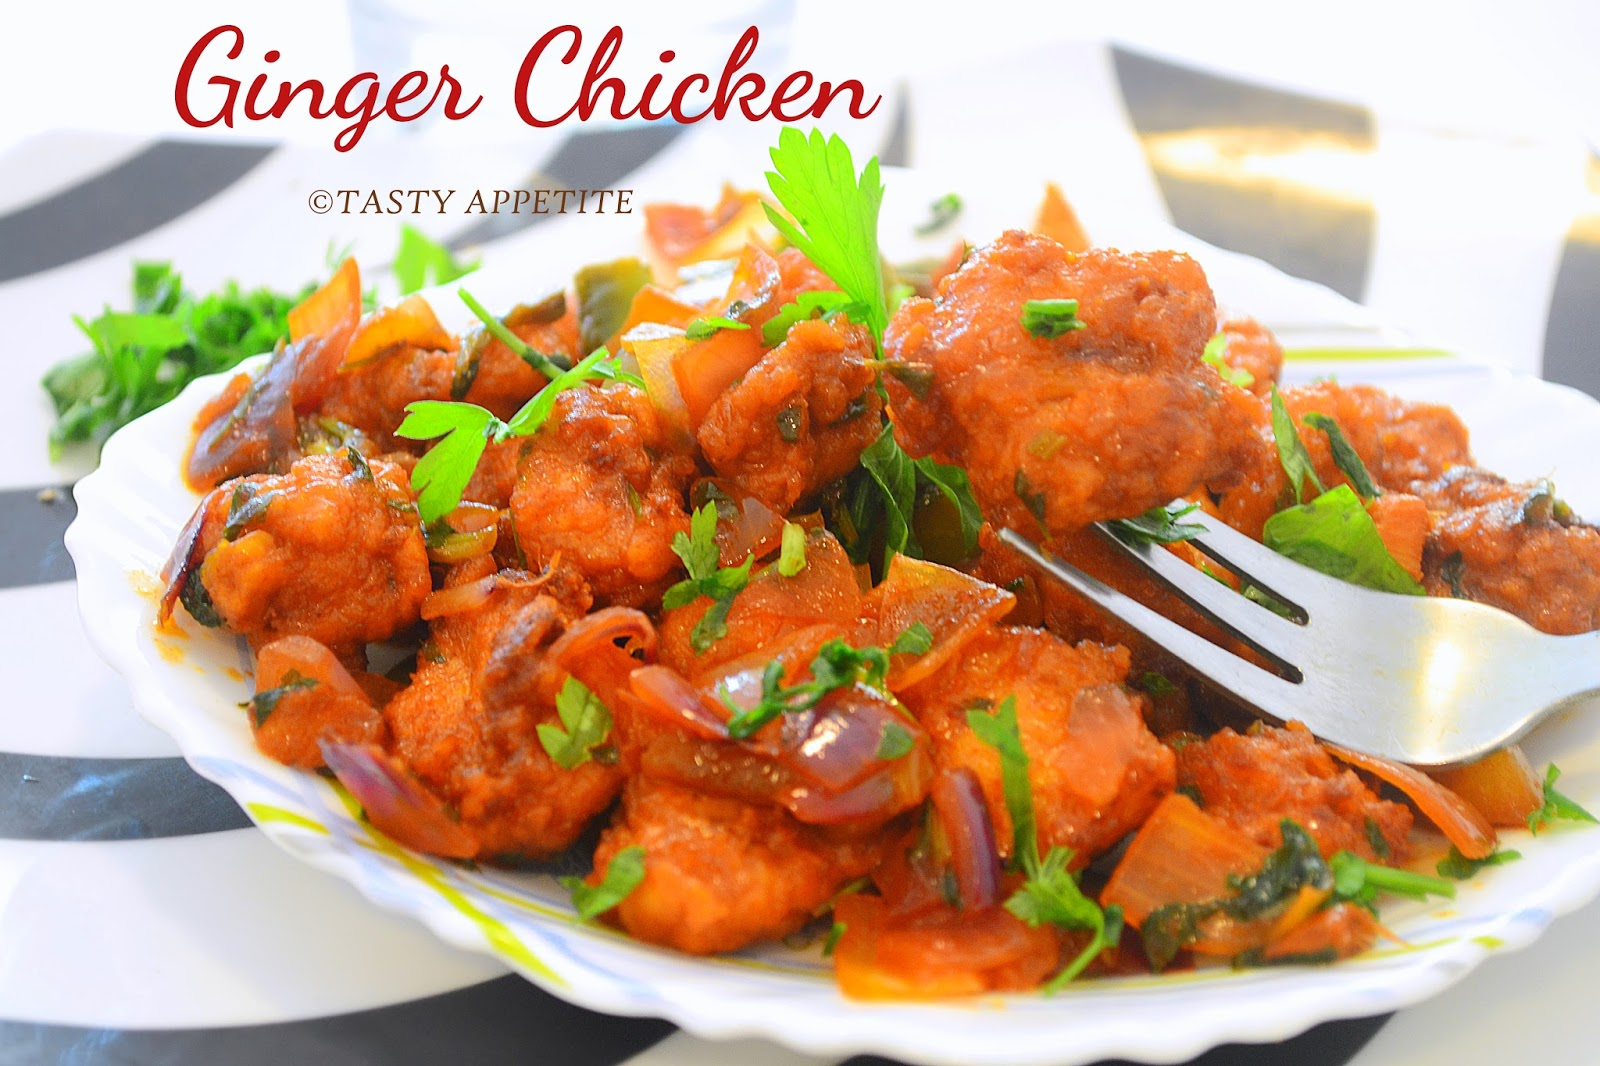 Ginger chicken recipe how to make ginger chicken indo chinese ginger chicken recipe how to make ginger chicken indo chinese chicken recipes forumfinder Choice Image